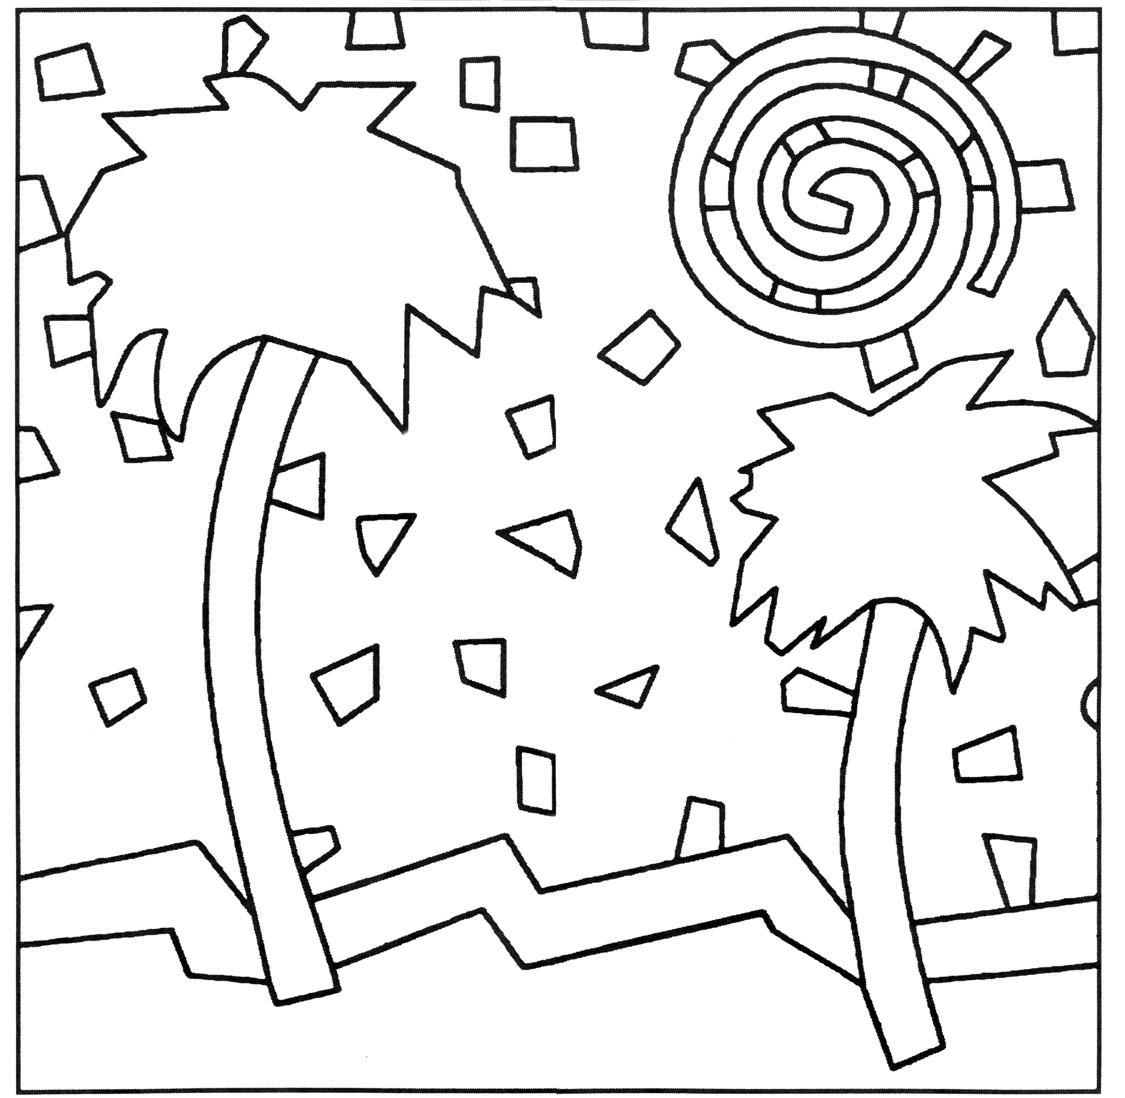 Pattern Simple Mosaic Coloring Pages Free Mosaic Patterns Mosaic Patterns Mosaic